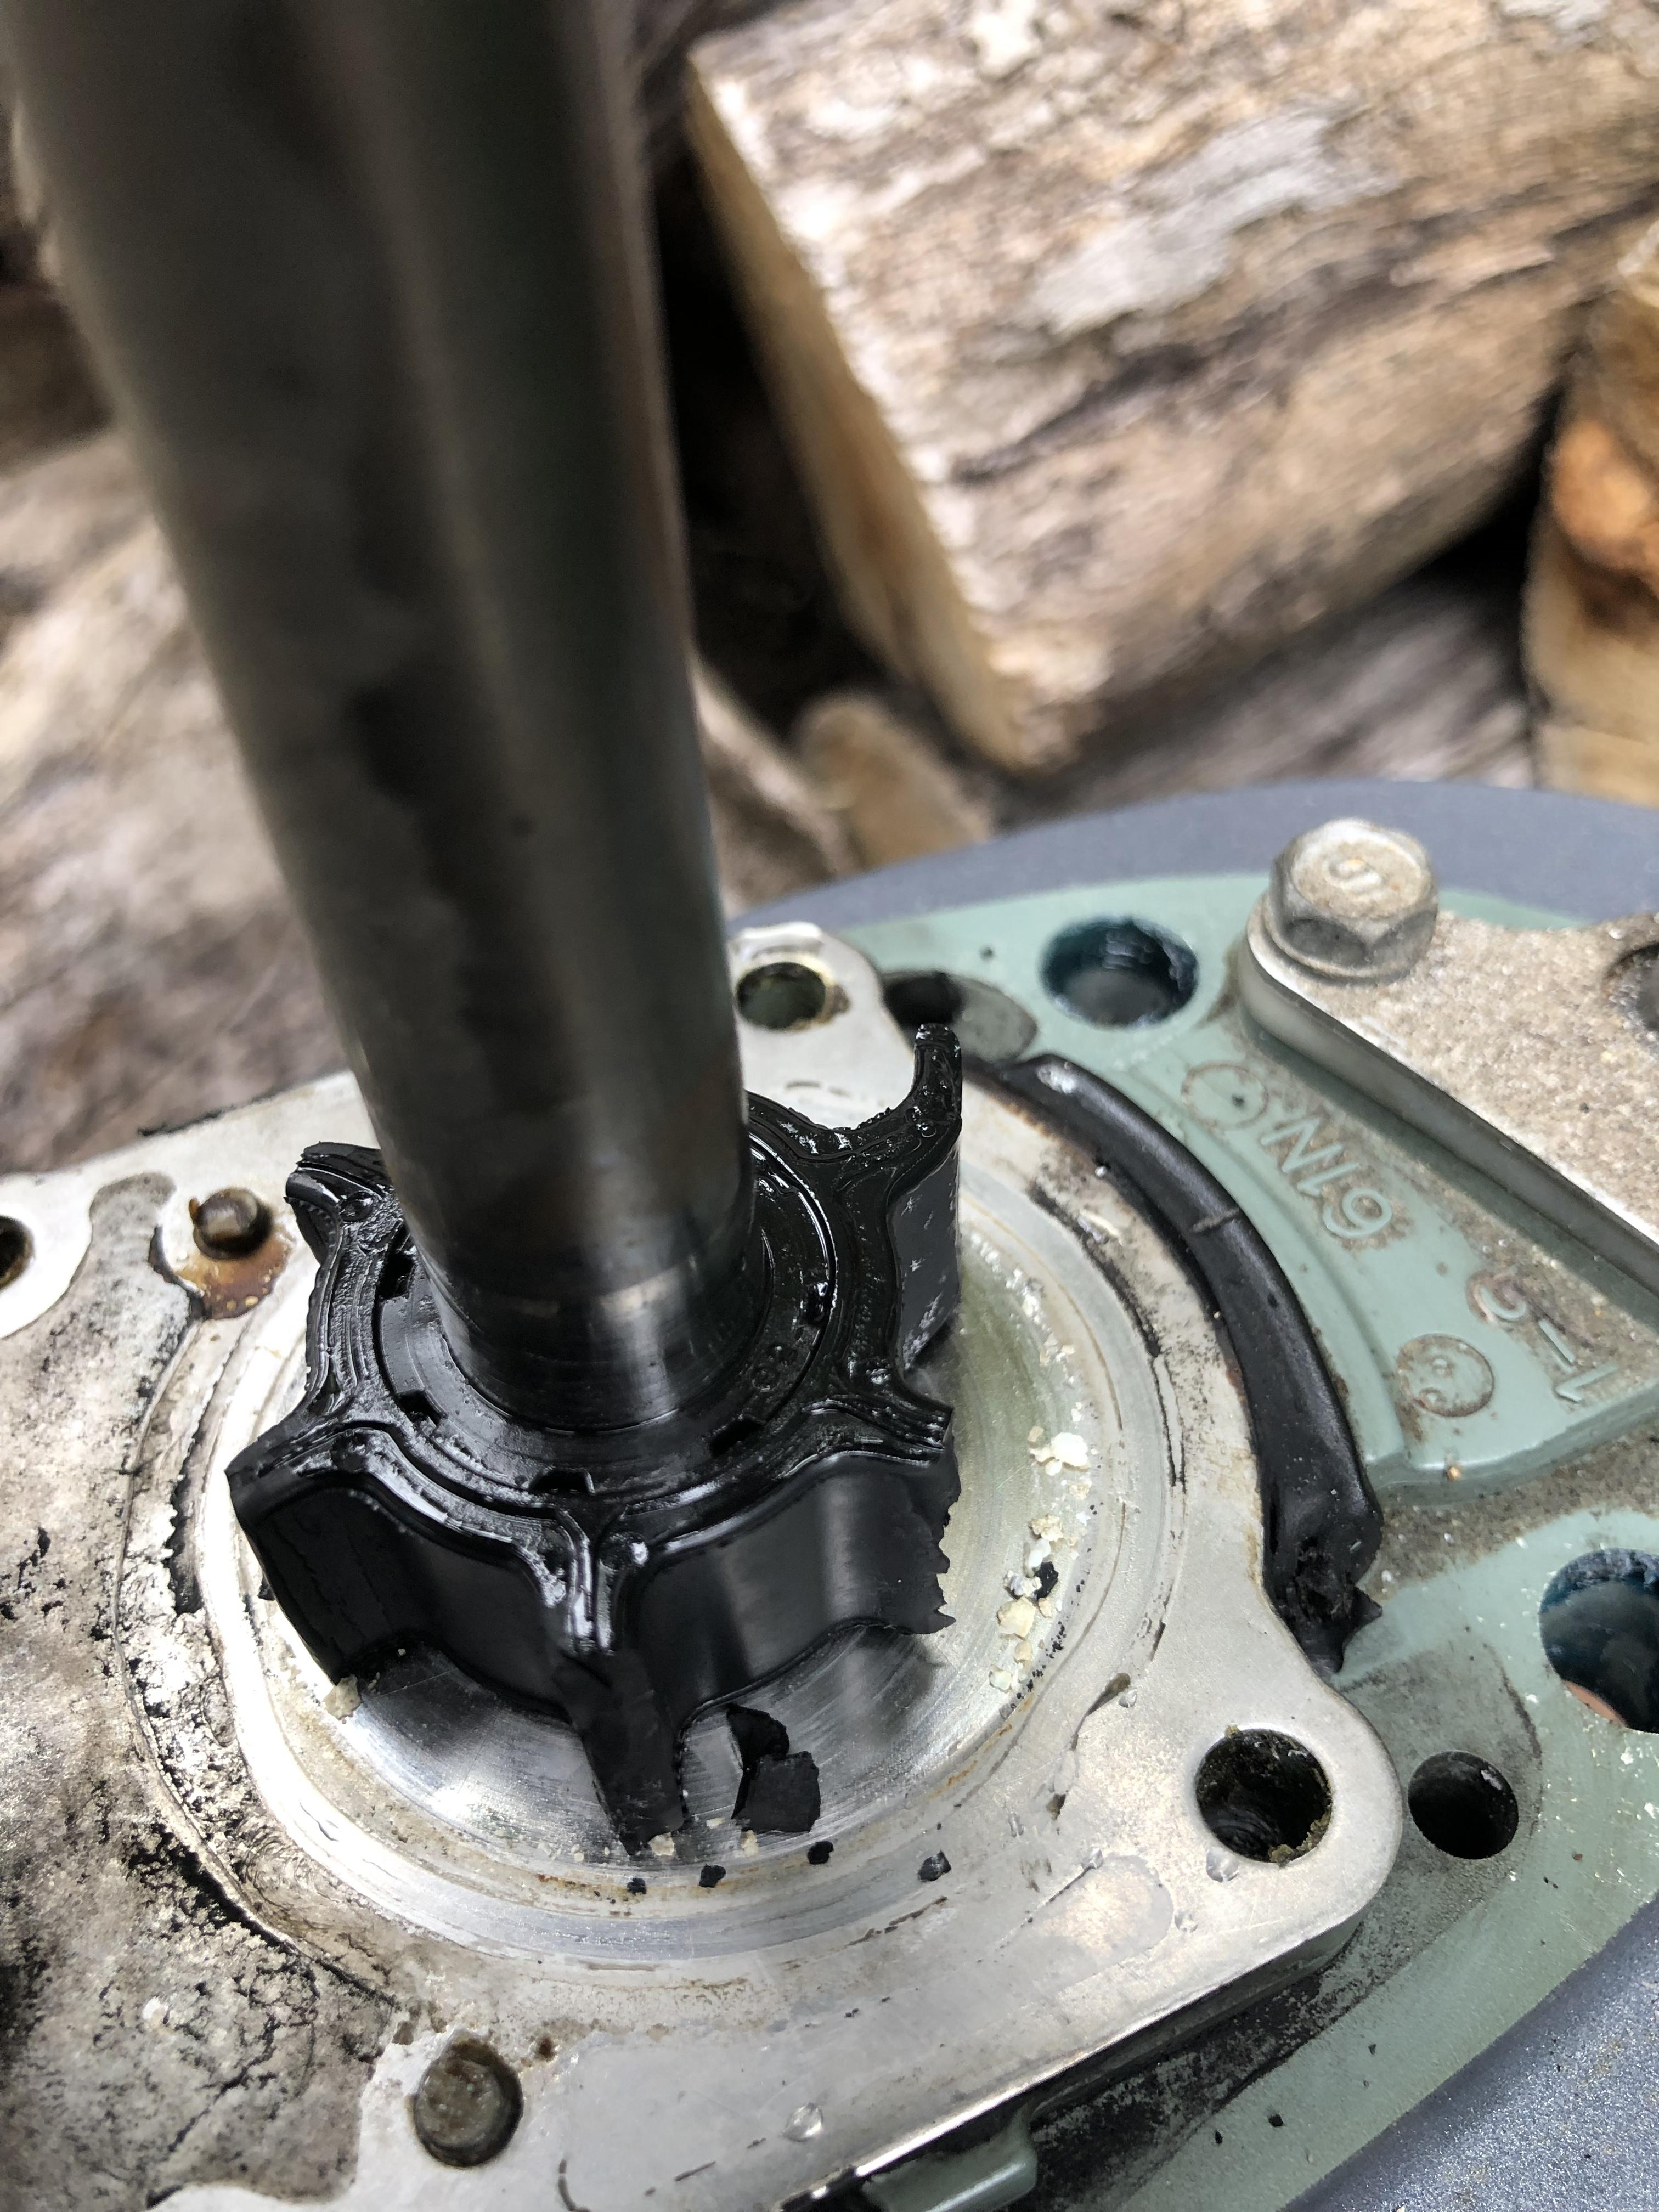 Yamaha 30hp 2 stroke impeller replacement    - Boating